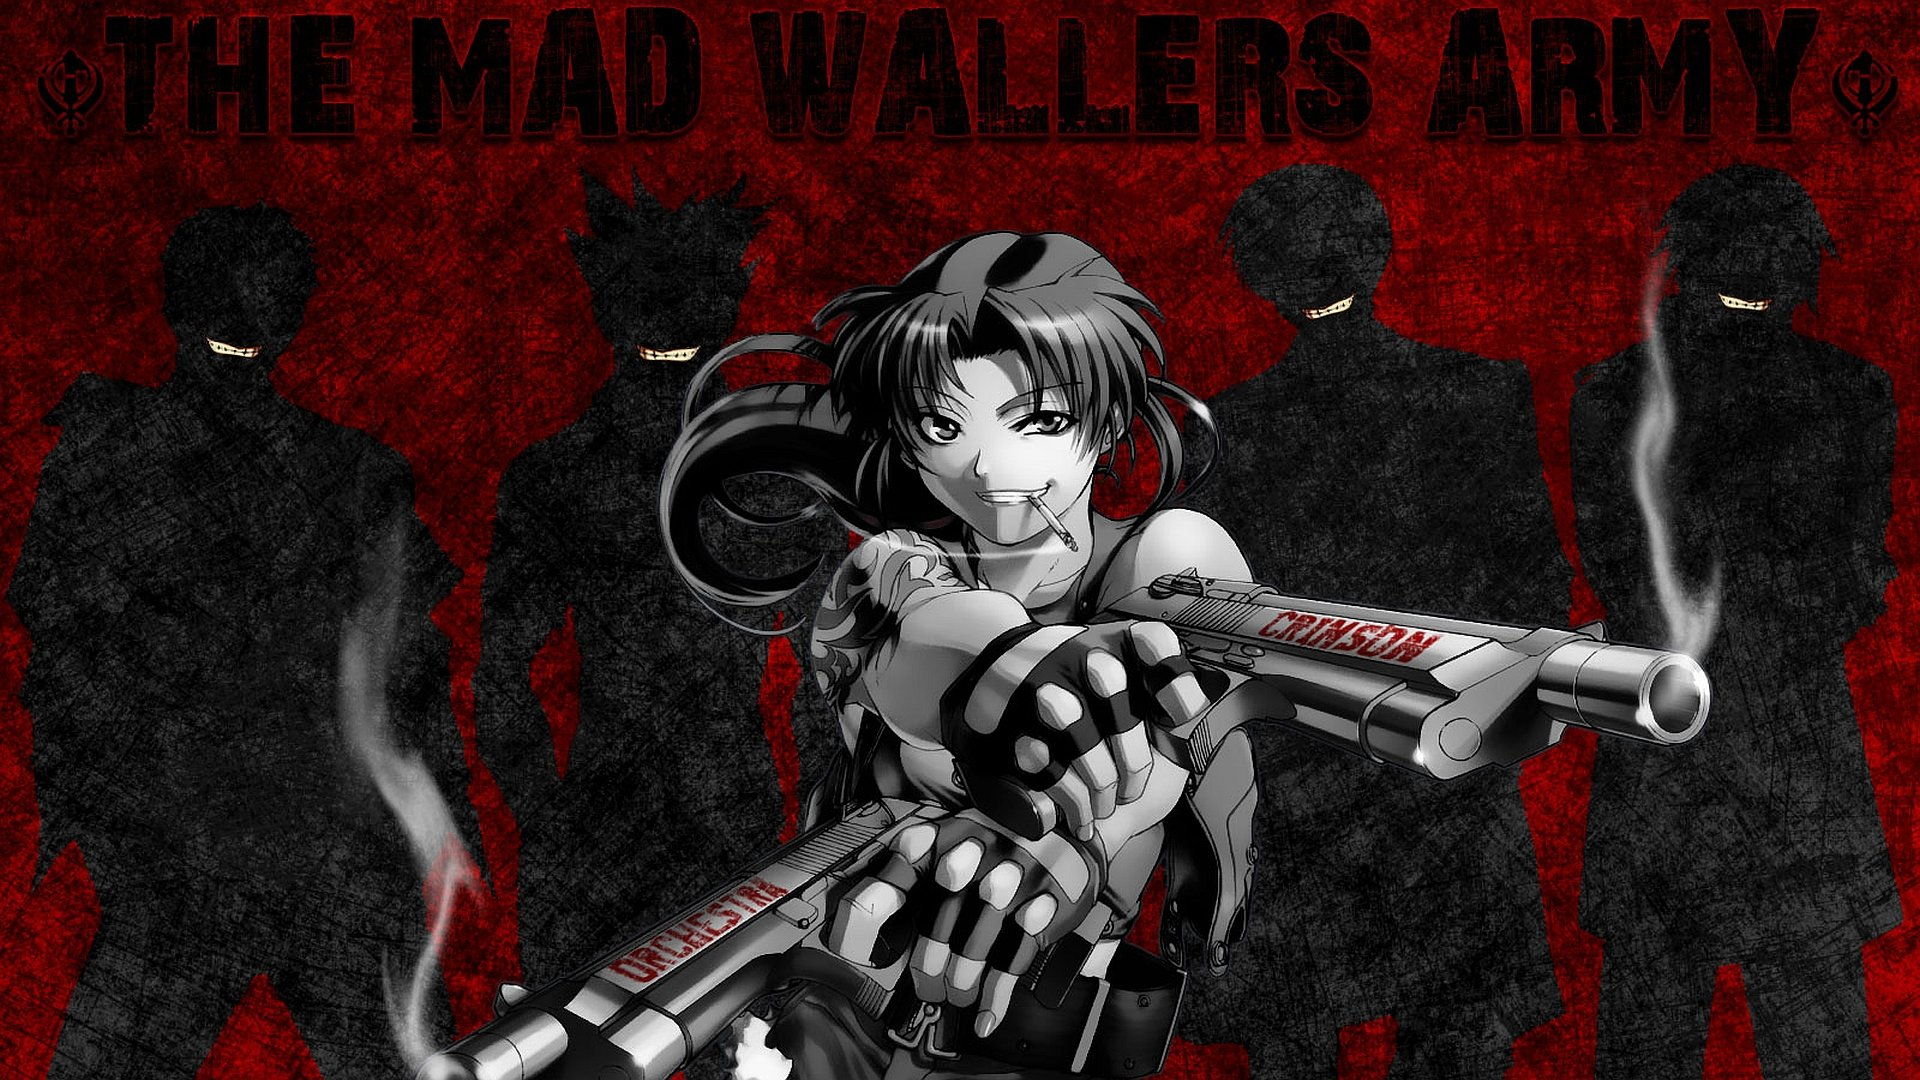 black lagoon wallpapers 1920x1080 full hd (1080p) desktop backgrounds